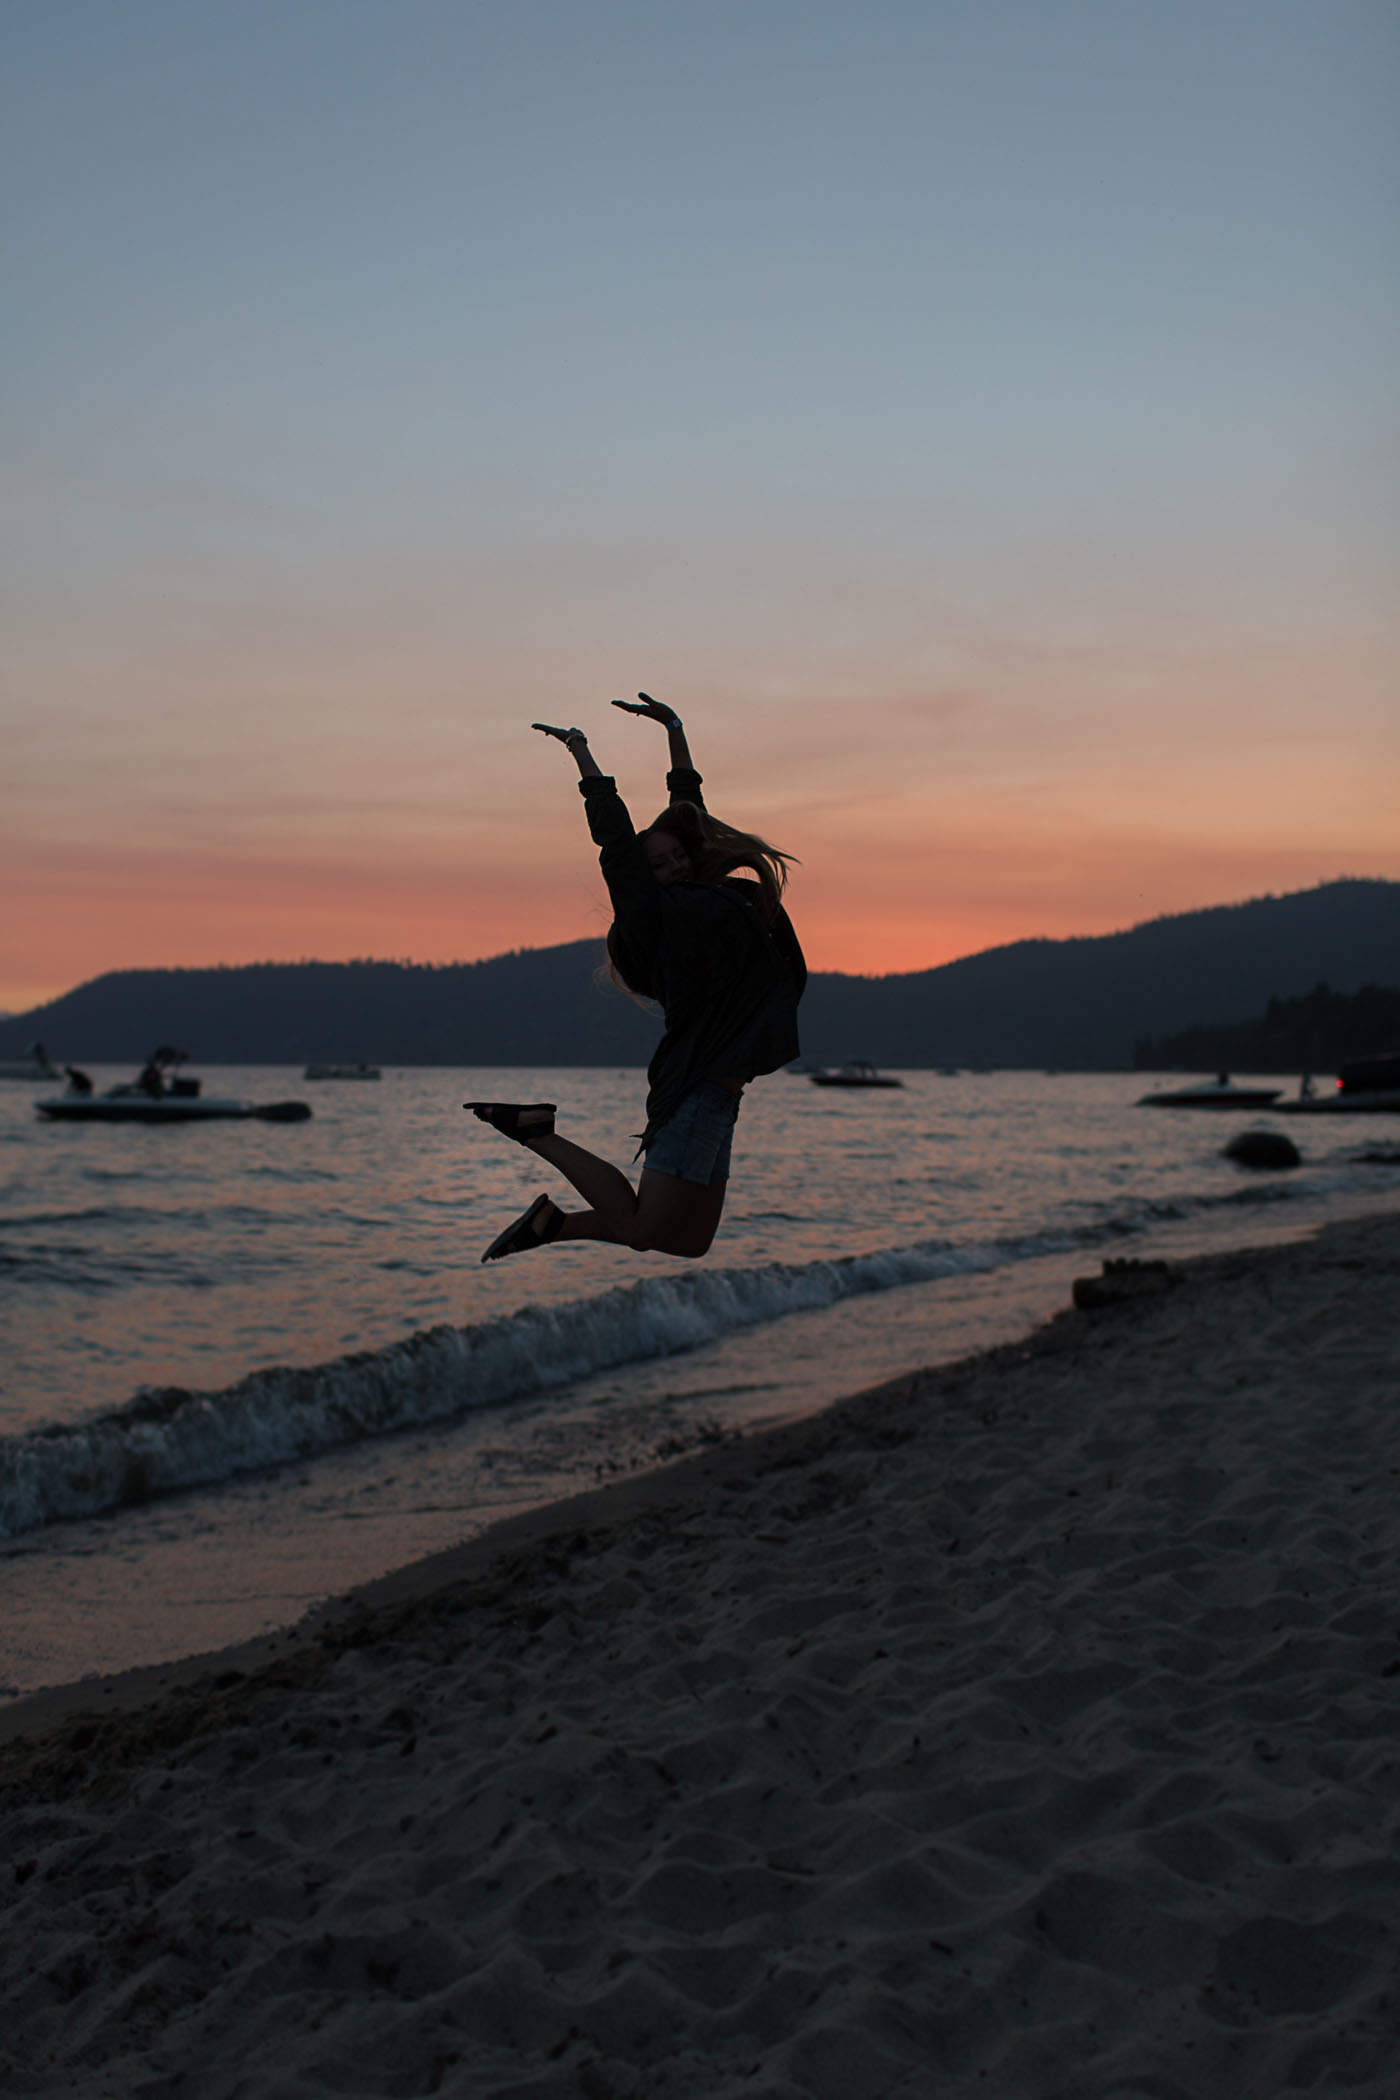 Jumping in the sunset